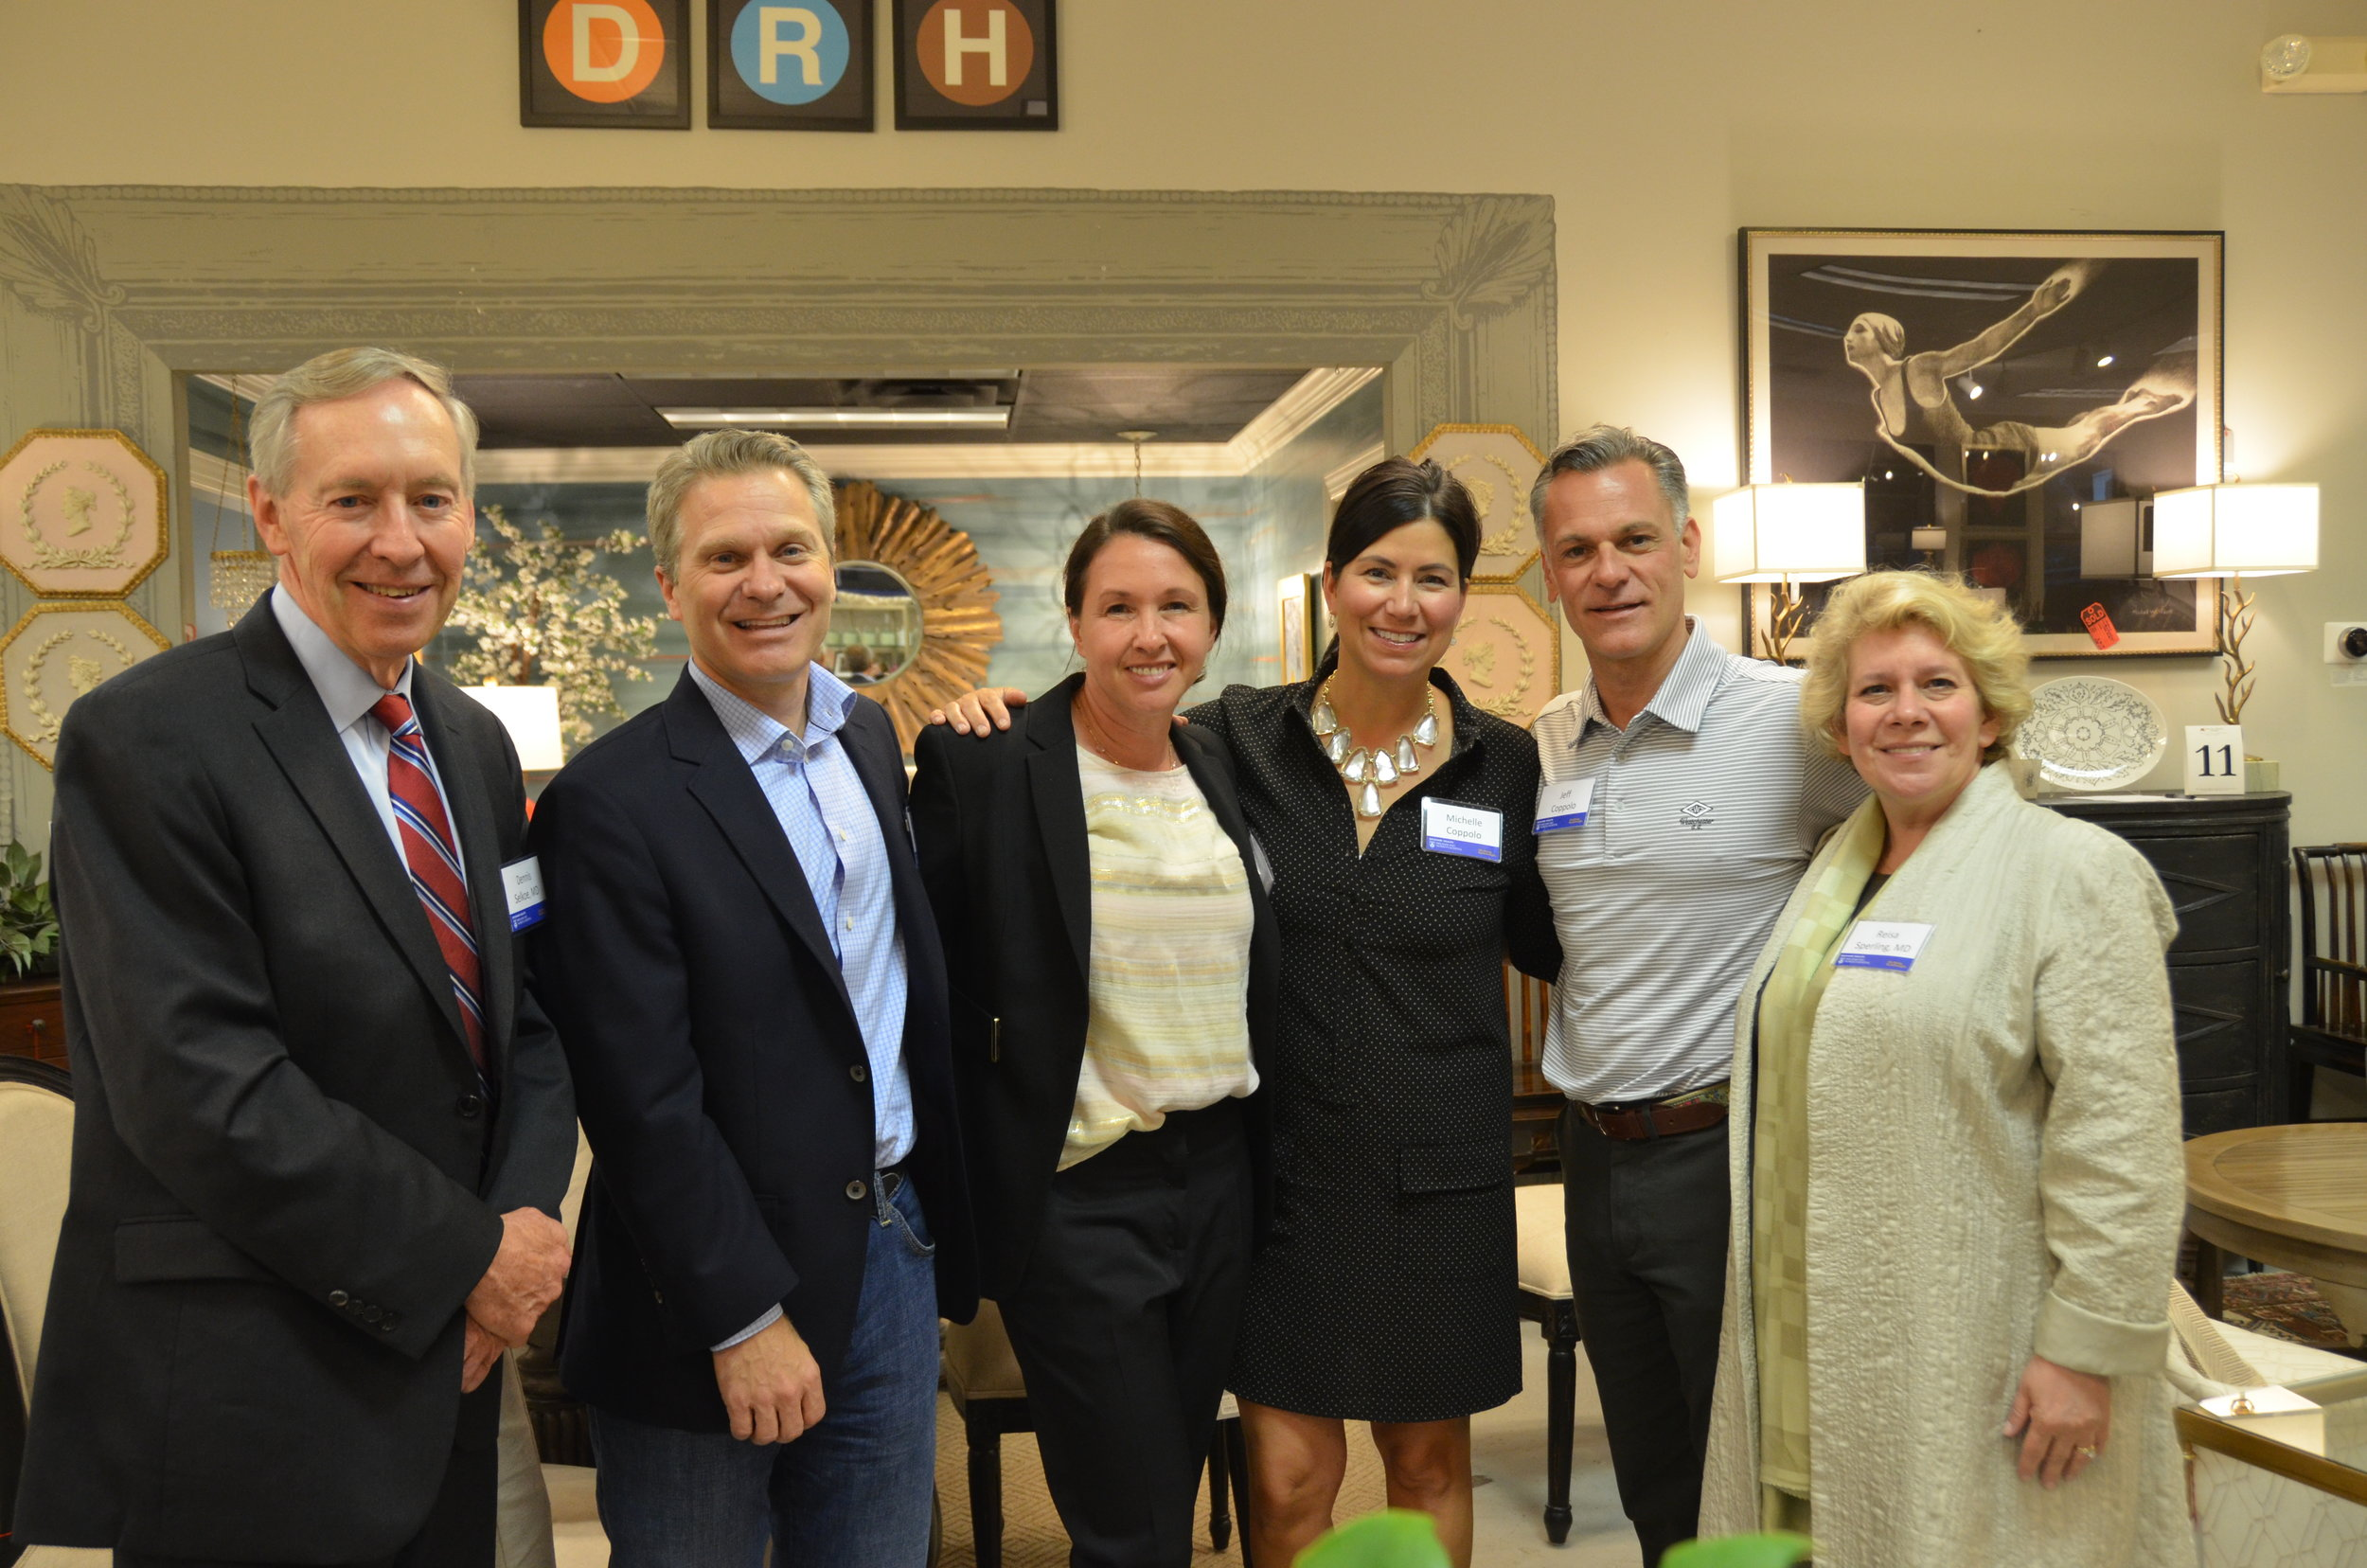 From Left to Right:  Dr. Dennis Selkoe, MD, Matt and Jenna Vettel (founders of the Alzheimer's Innovation Fund), Michelle and Jeff Coppolo (owners of Darby Road HOME), and Dr. Reisa Sperling, MD.